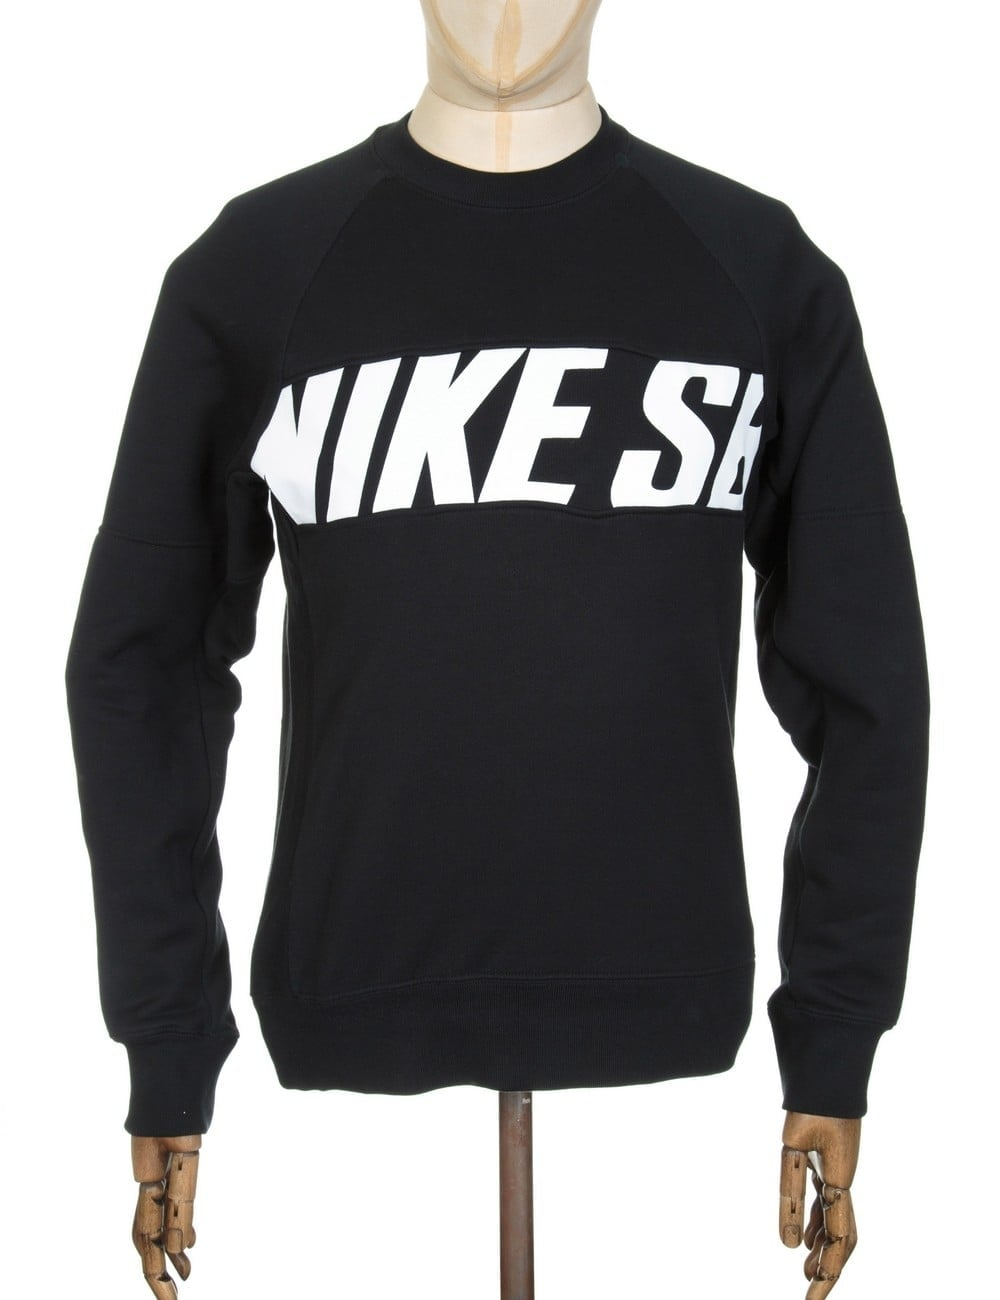 c67d0c9ee3ad Nike SB Everett Motion Sweatshirt - Black - Clothing from Fat Buddha ...